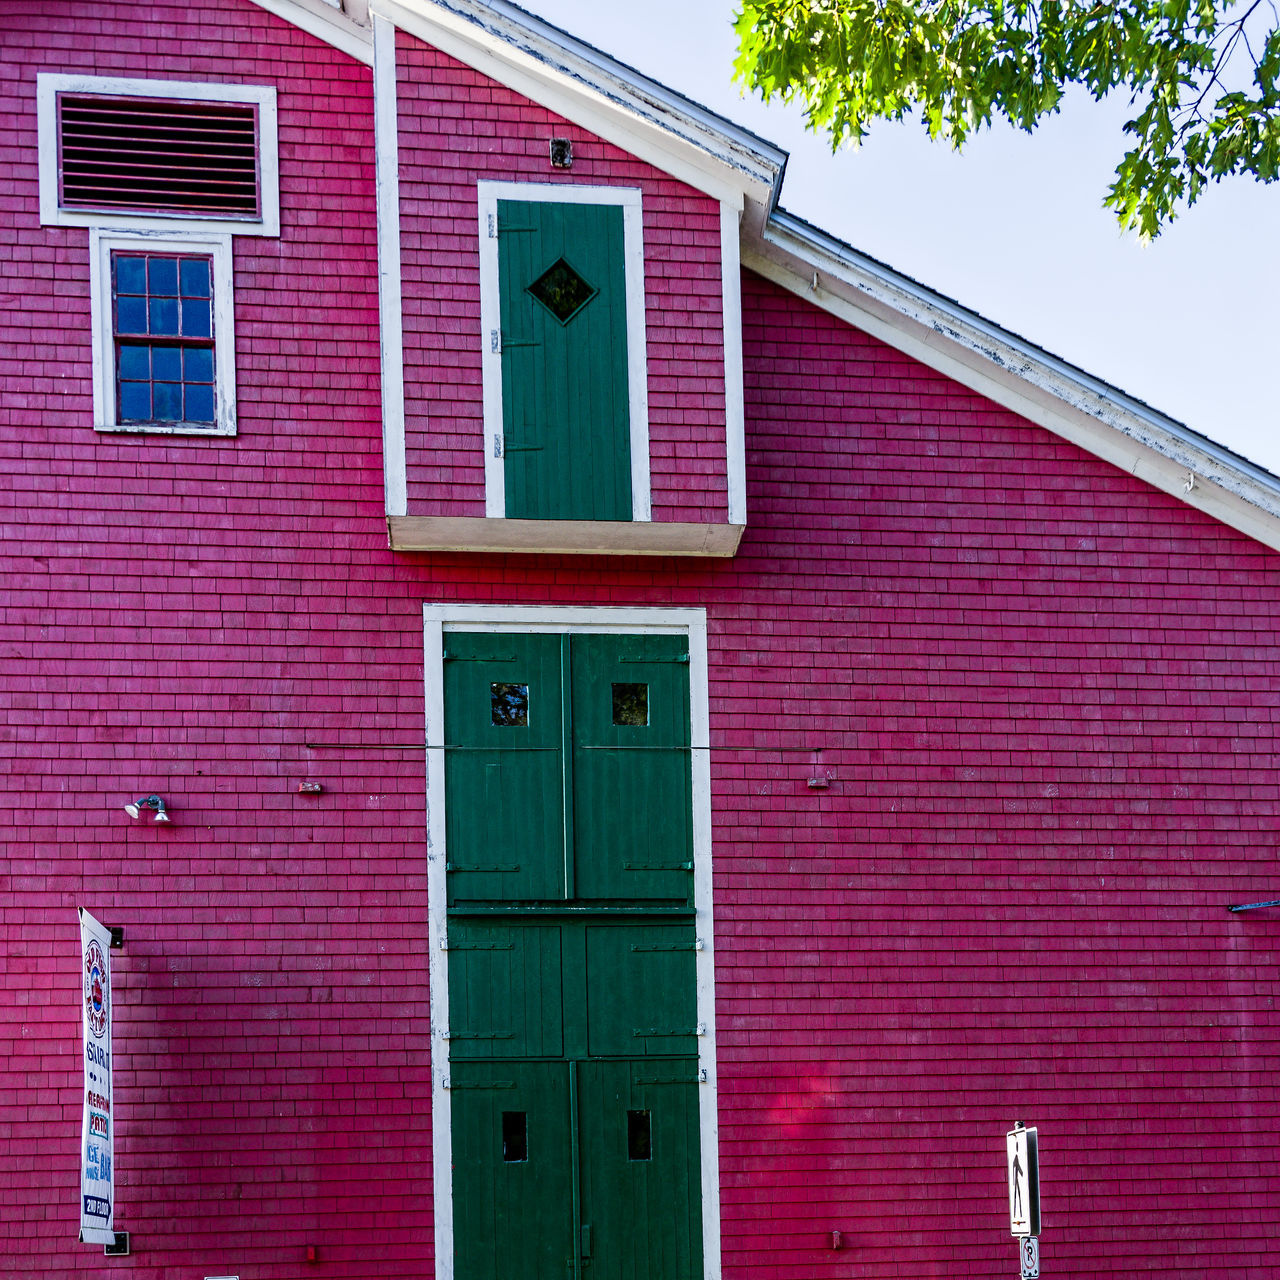 Architecture B Green Doors Lines And Shapes Lunenburg, NS, Canada Relaxing